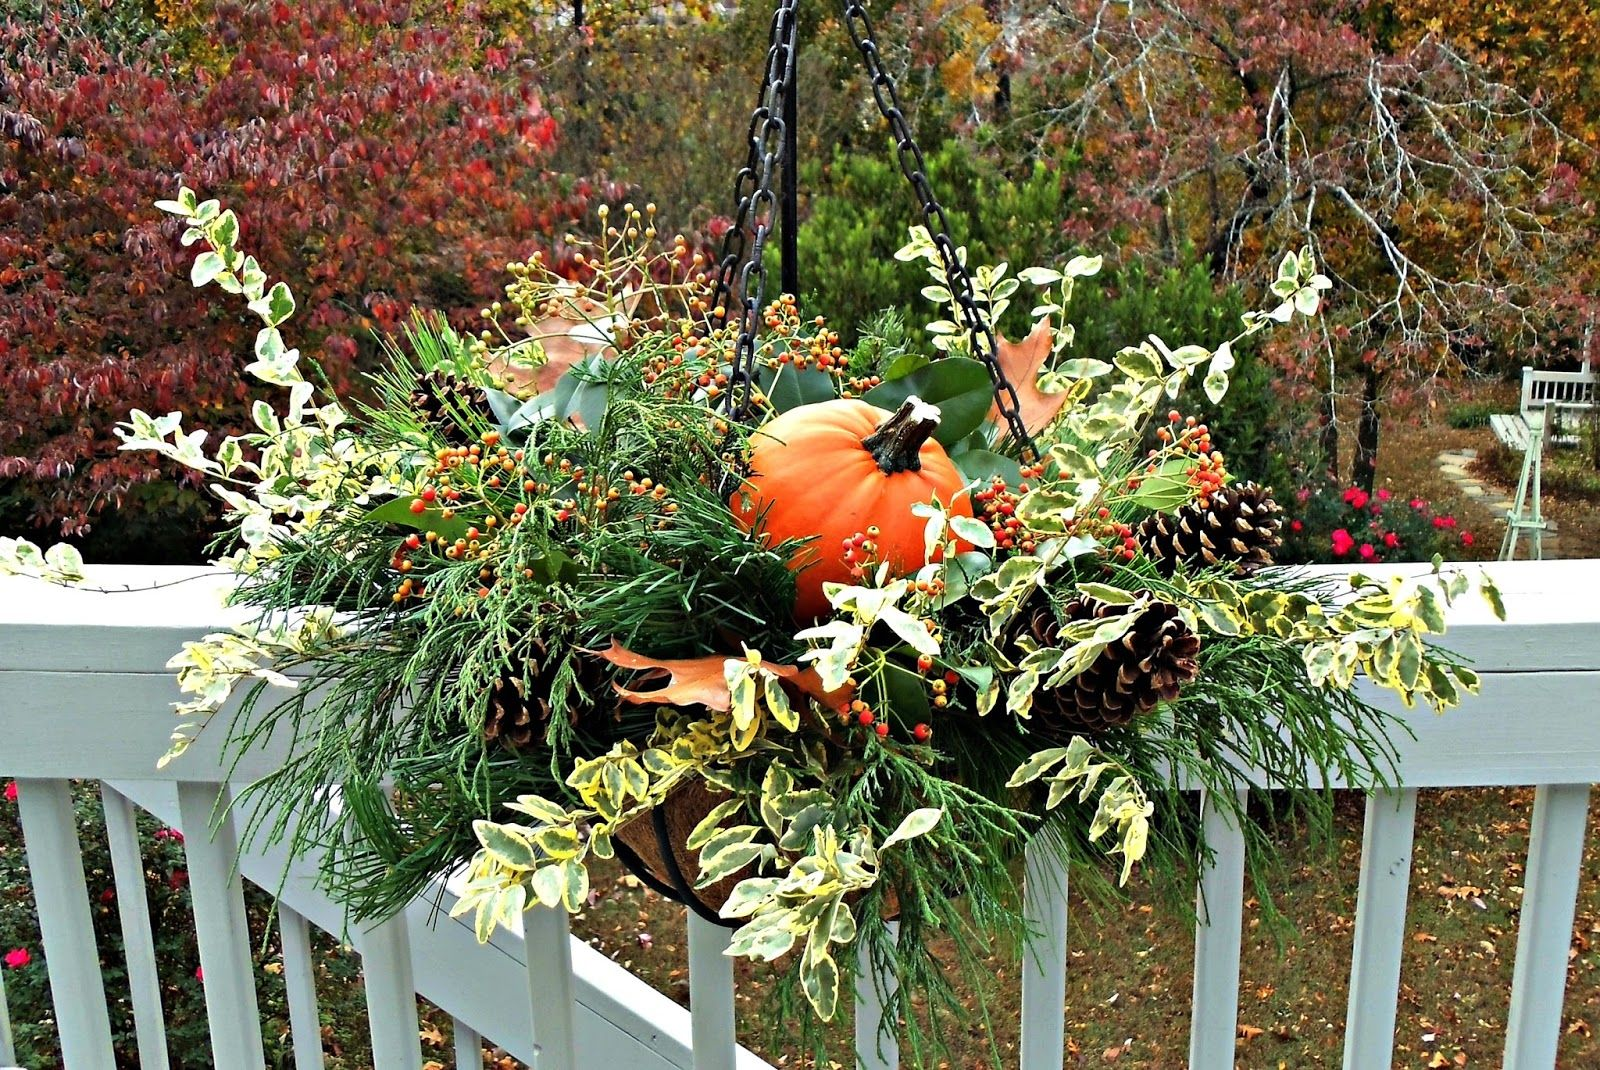 Super Cute Fall Hanging Basket Idea Complete With A Pumpkin Few Swaps And You Could Easily Turn This Into Winter One